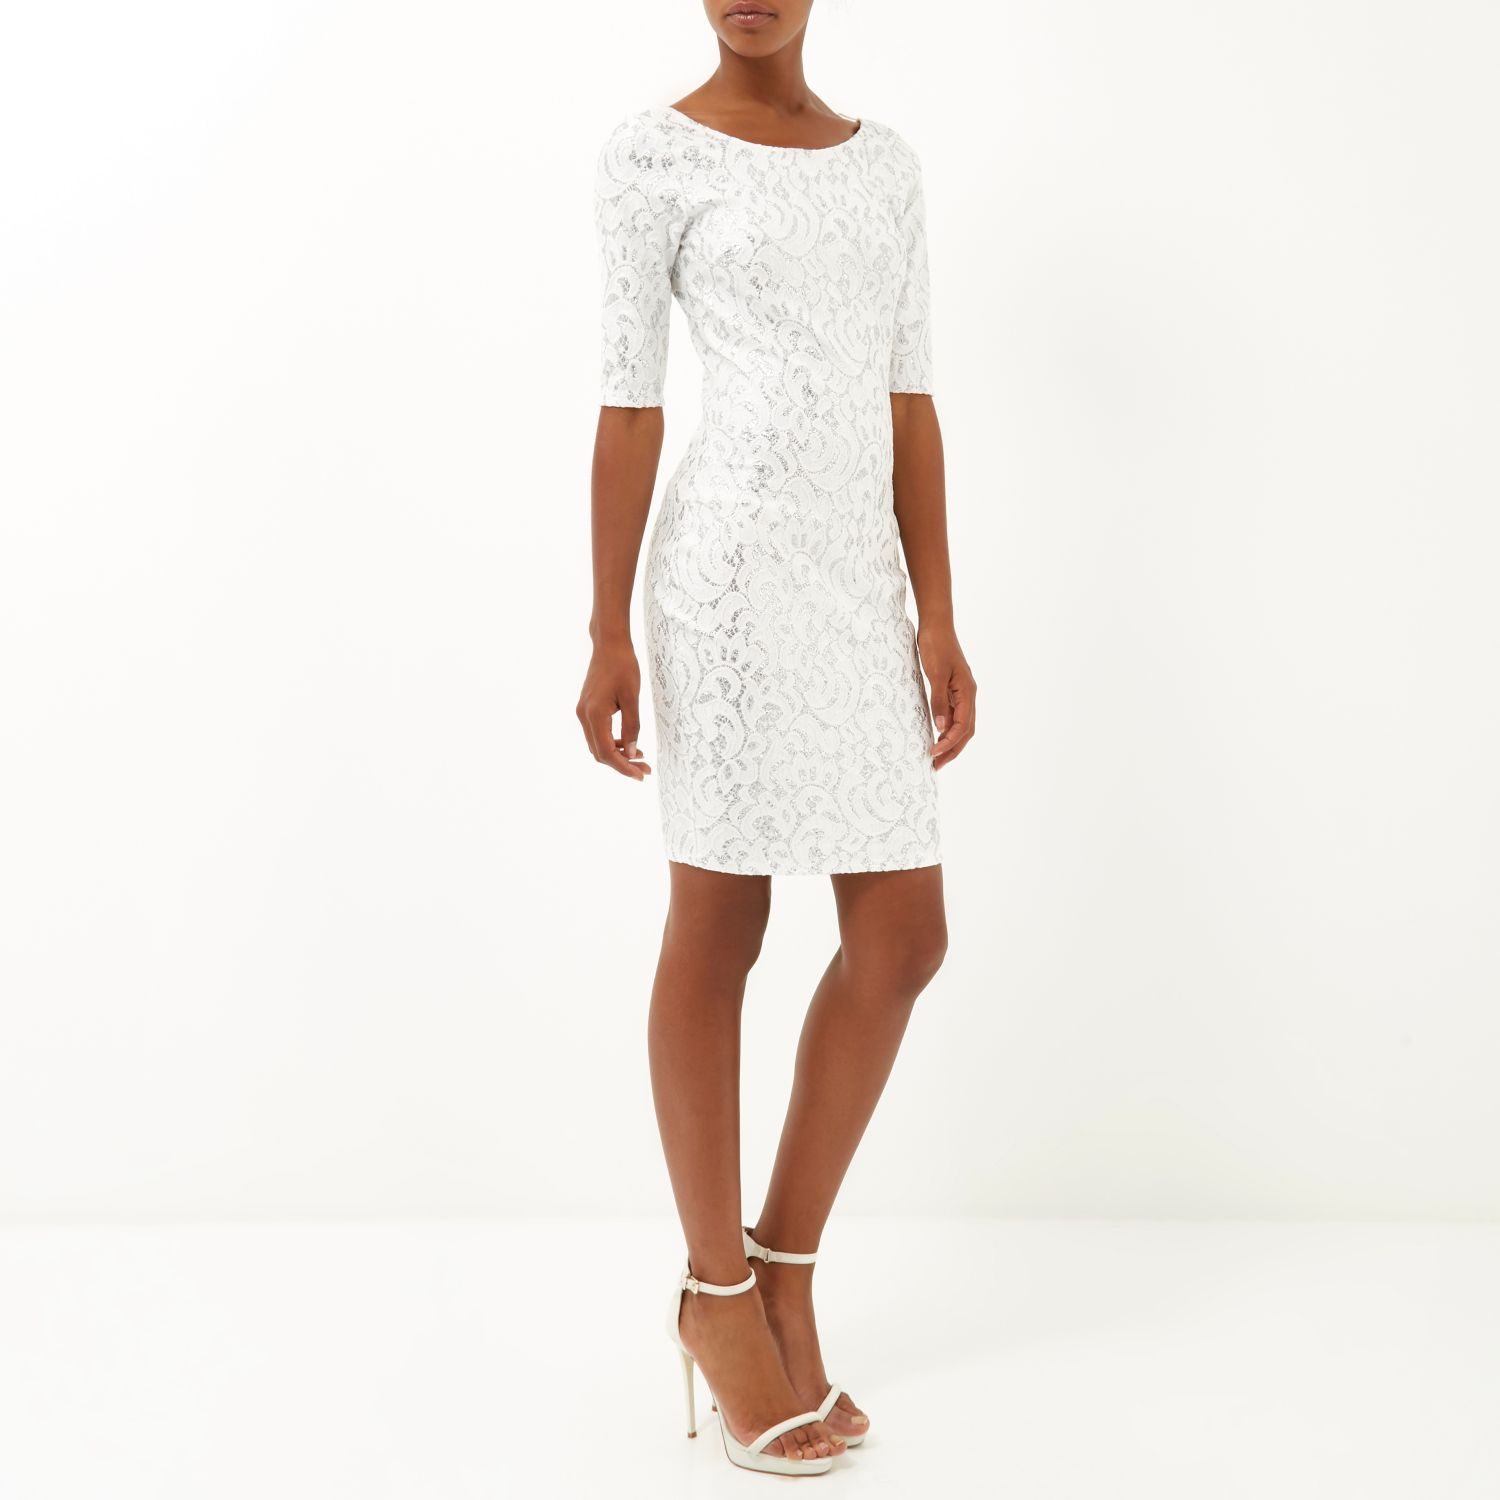 River Island White Sparkly 3 4 Sleeve Bodycon Dress in White - Lyst 0dd3d7d6b